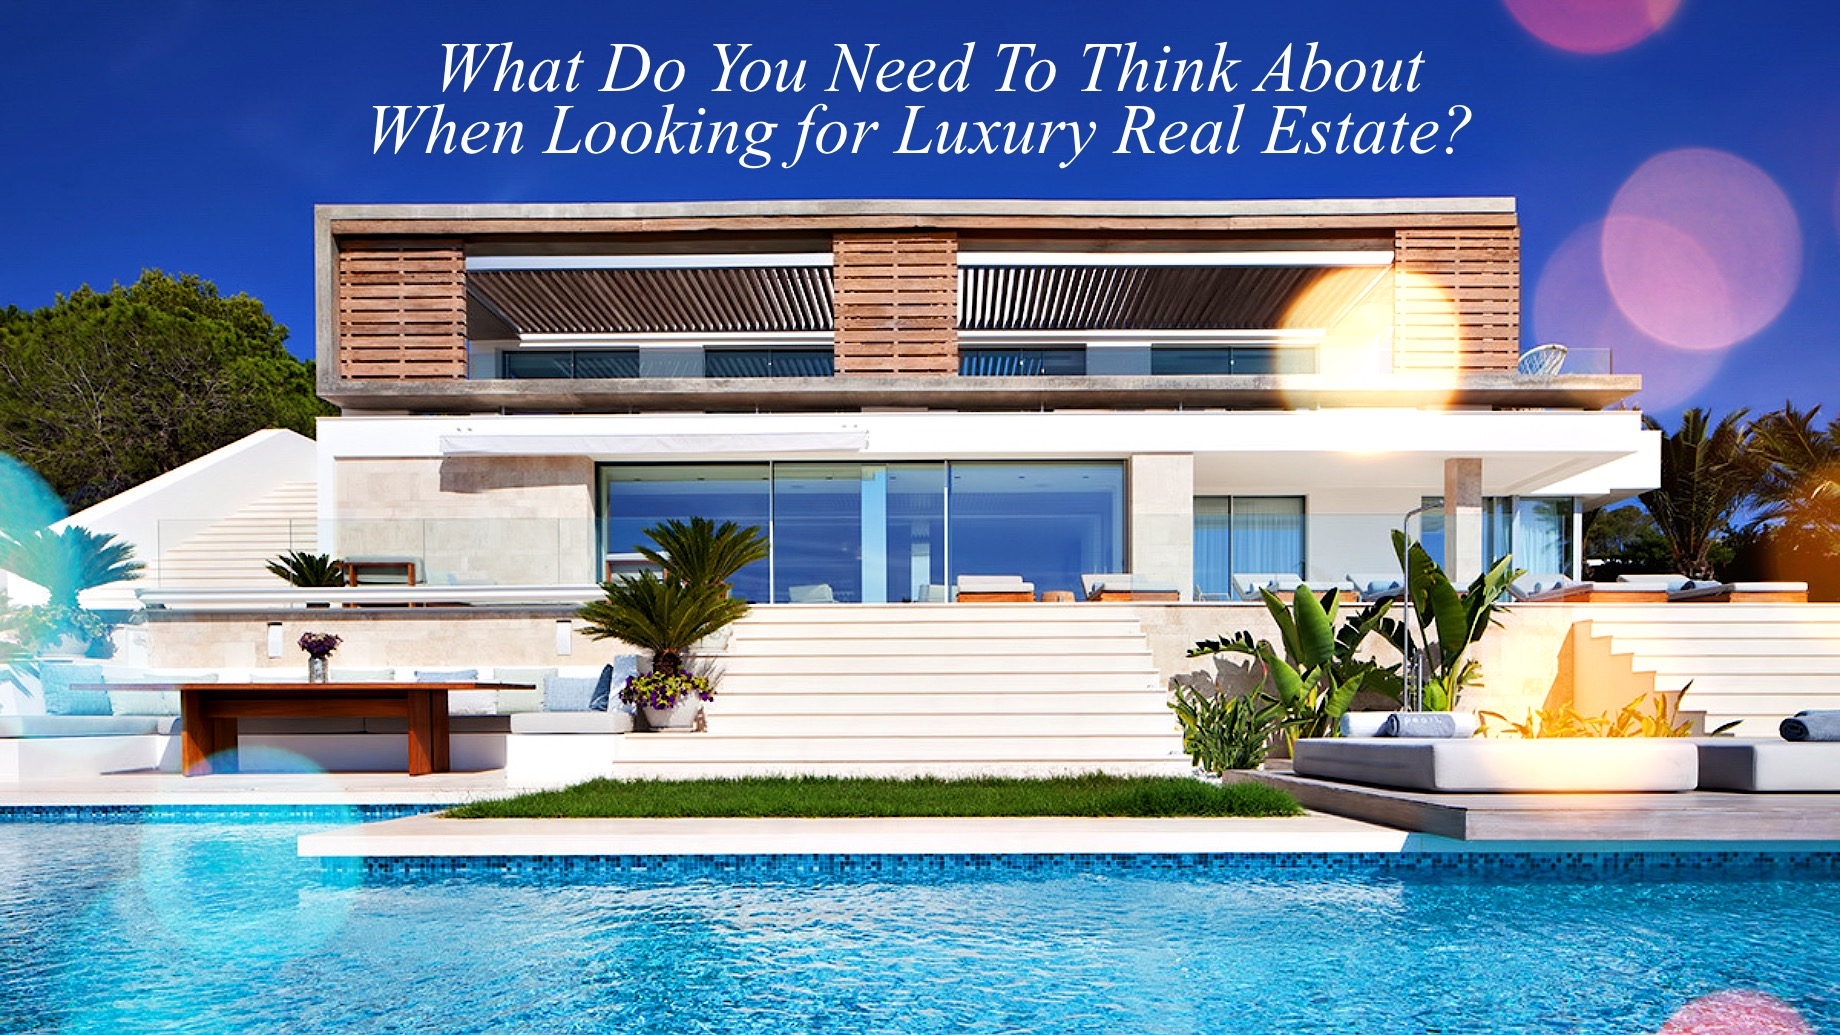 What Do You Need To Think About When Looking for Luxury Real Estate?